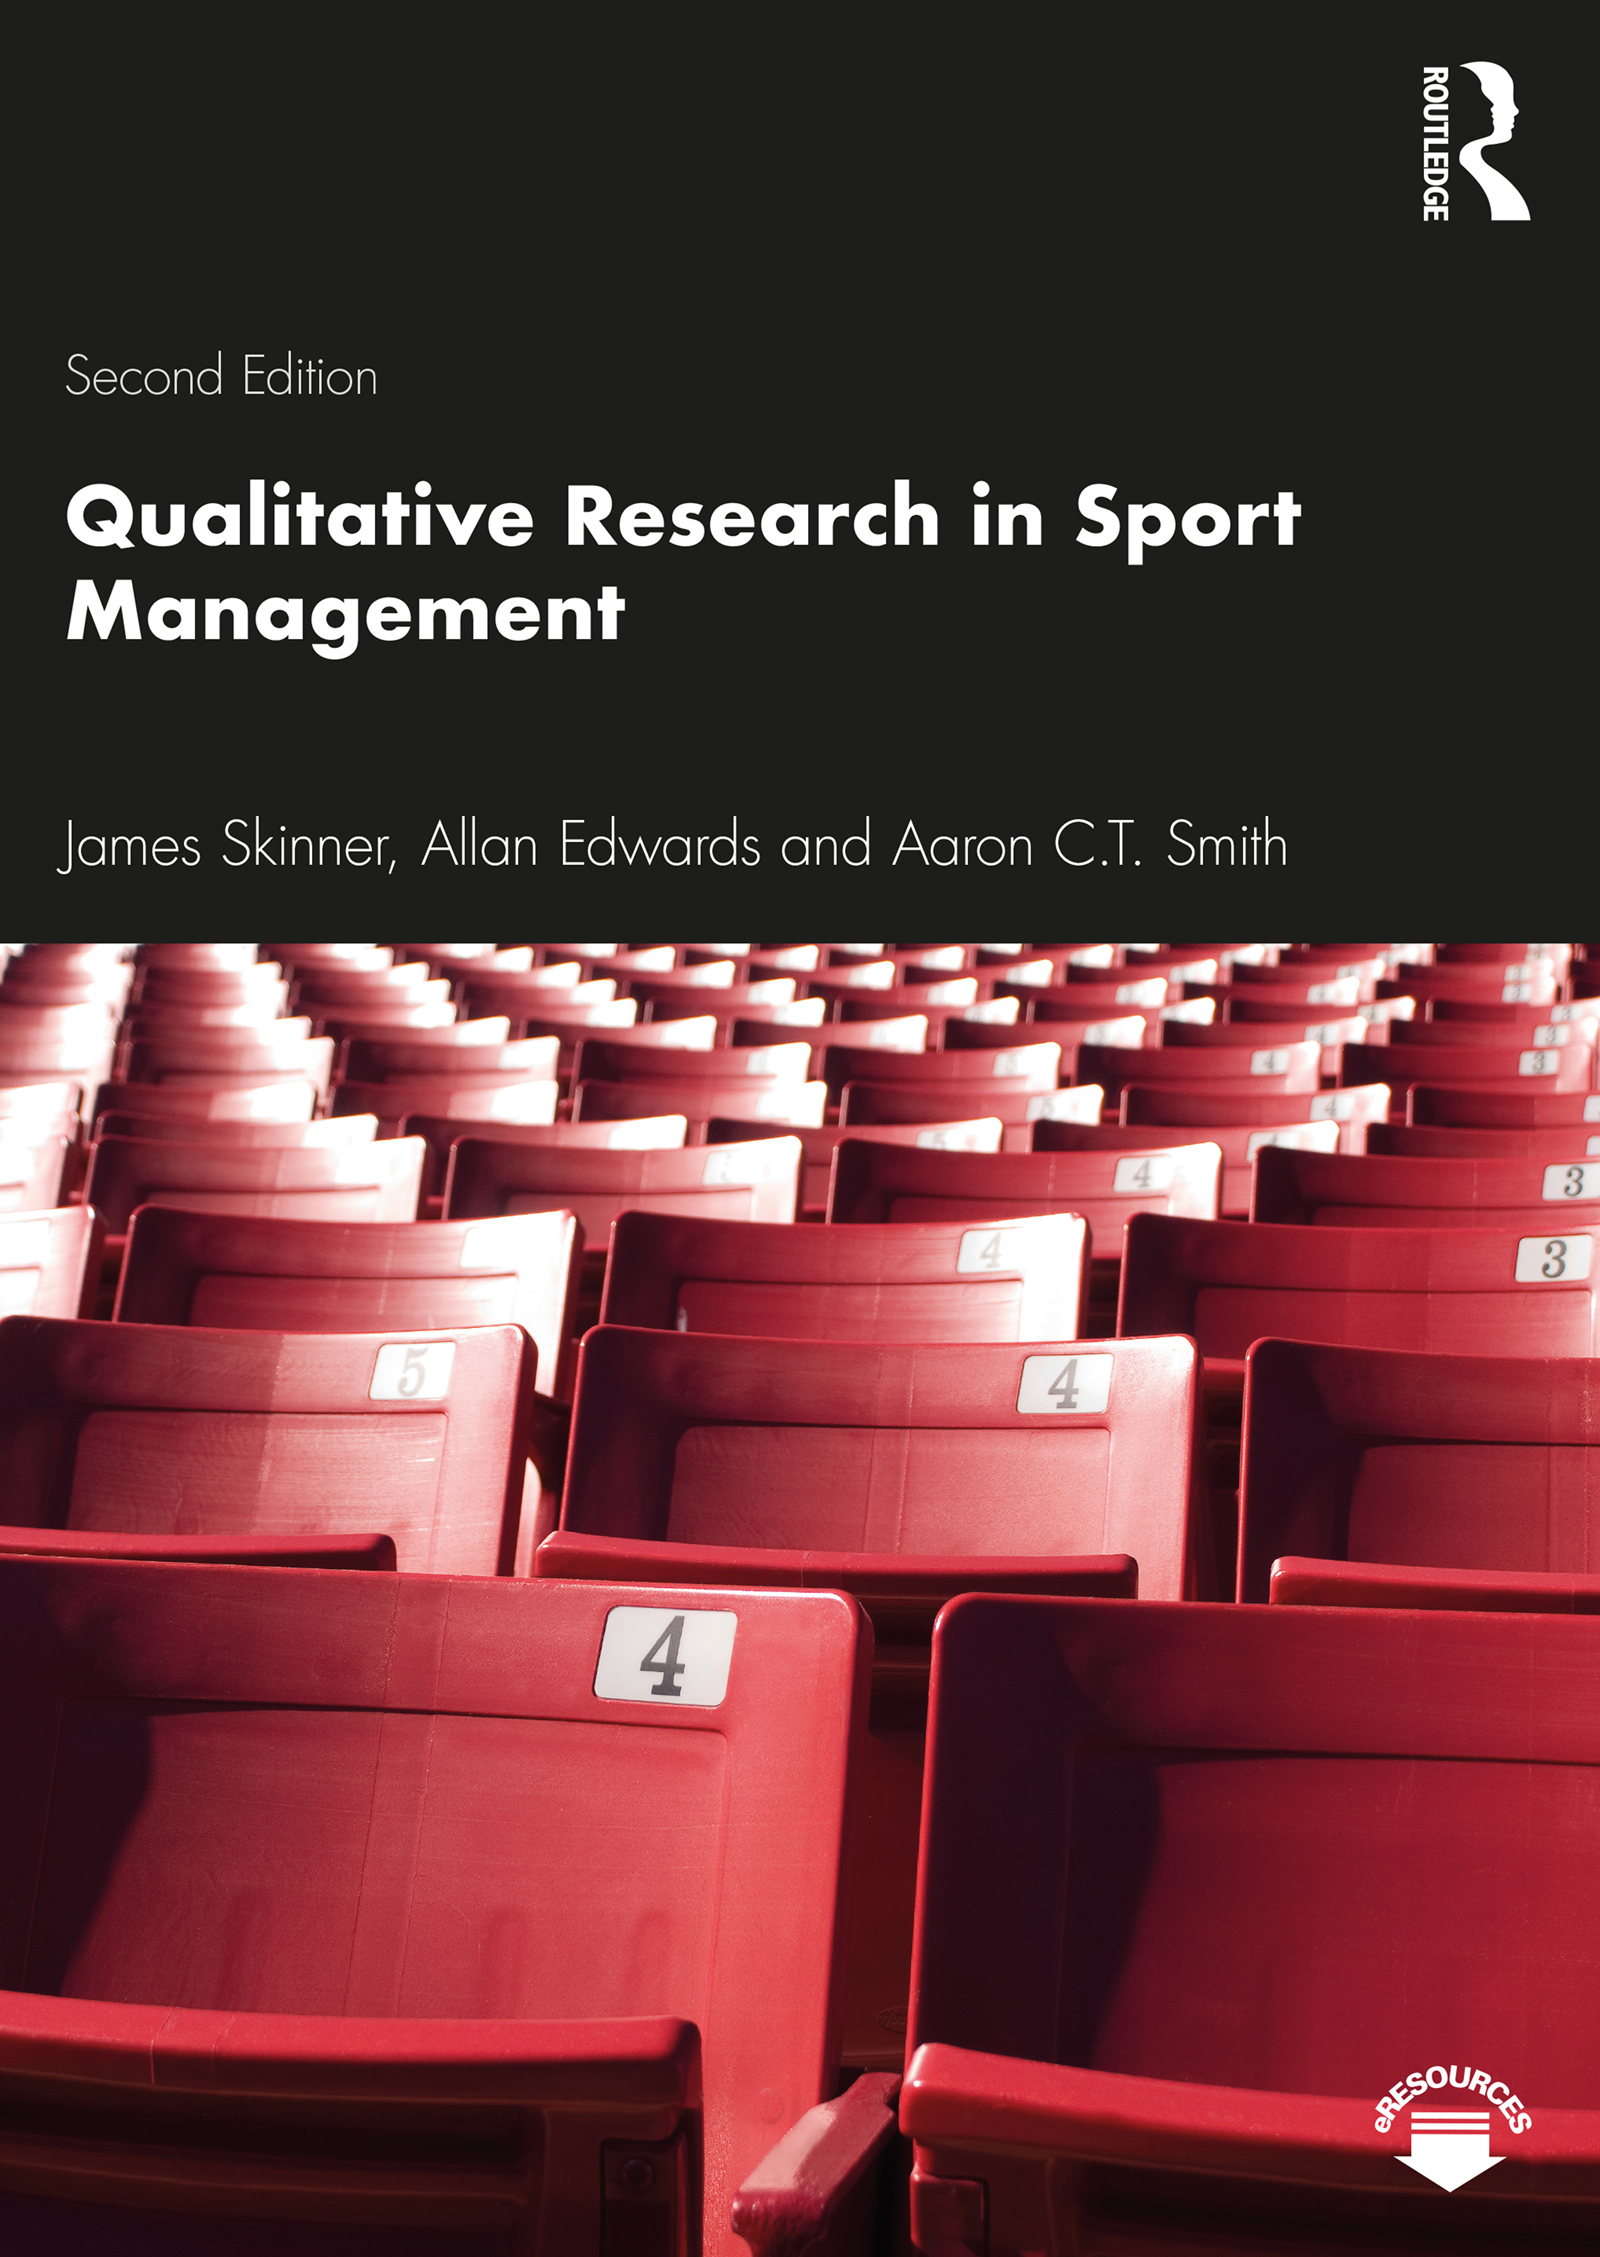 Emerging ethnographies and sport management research